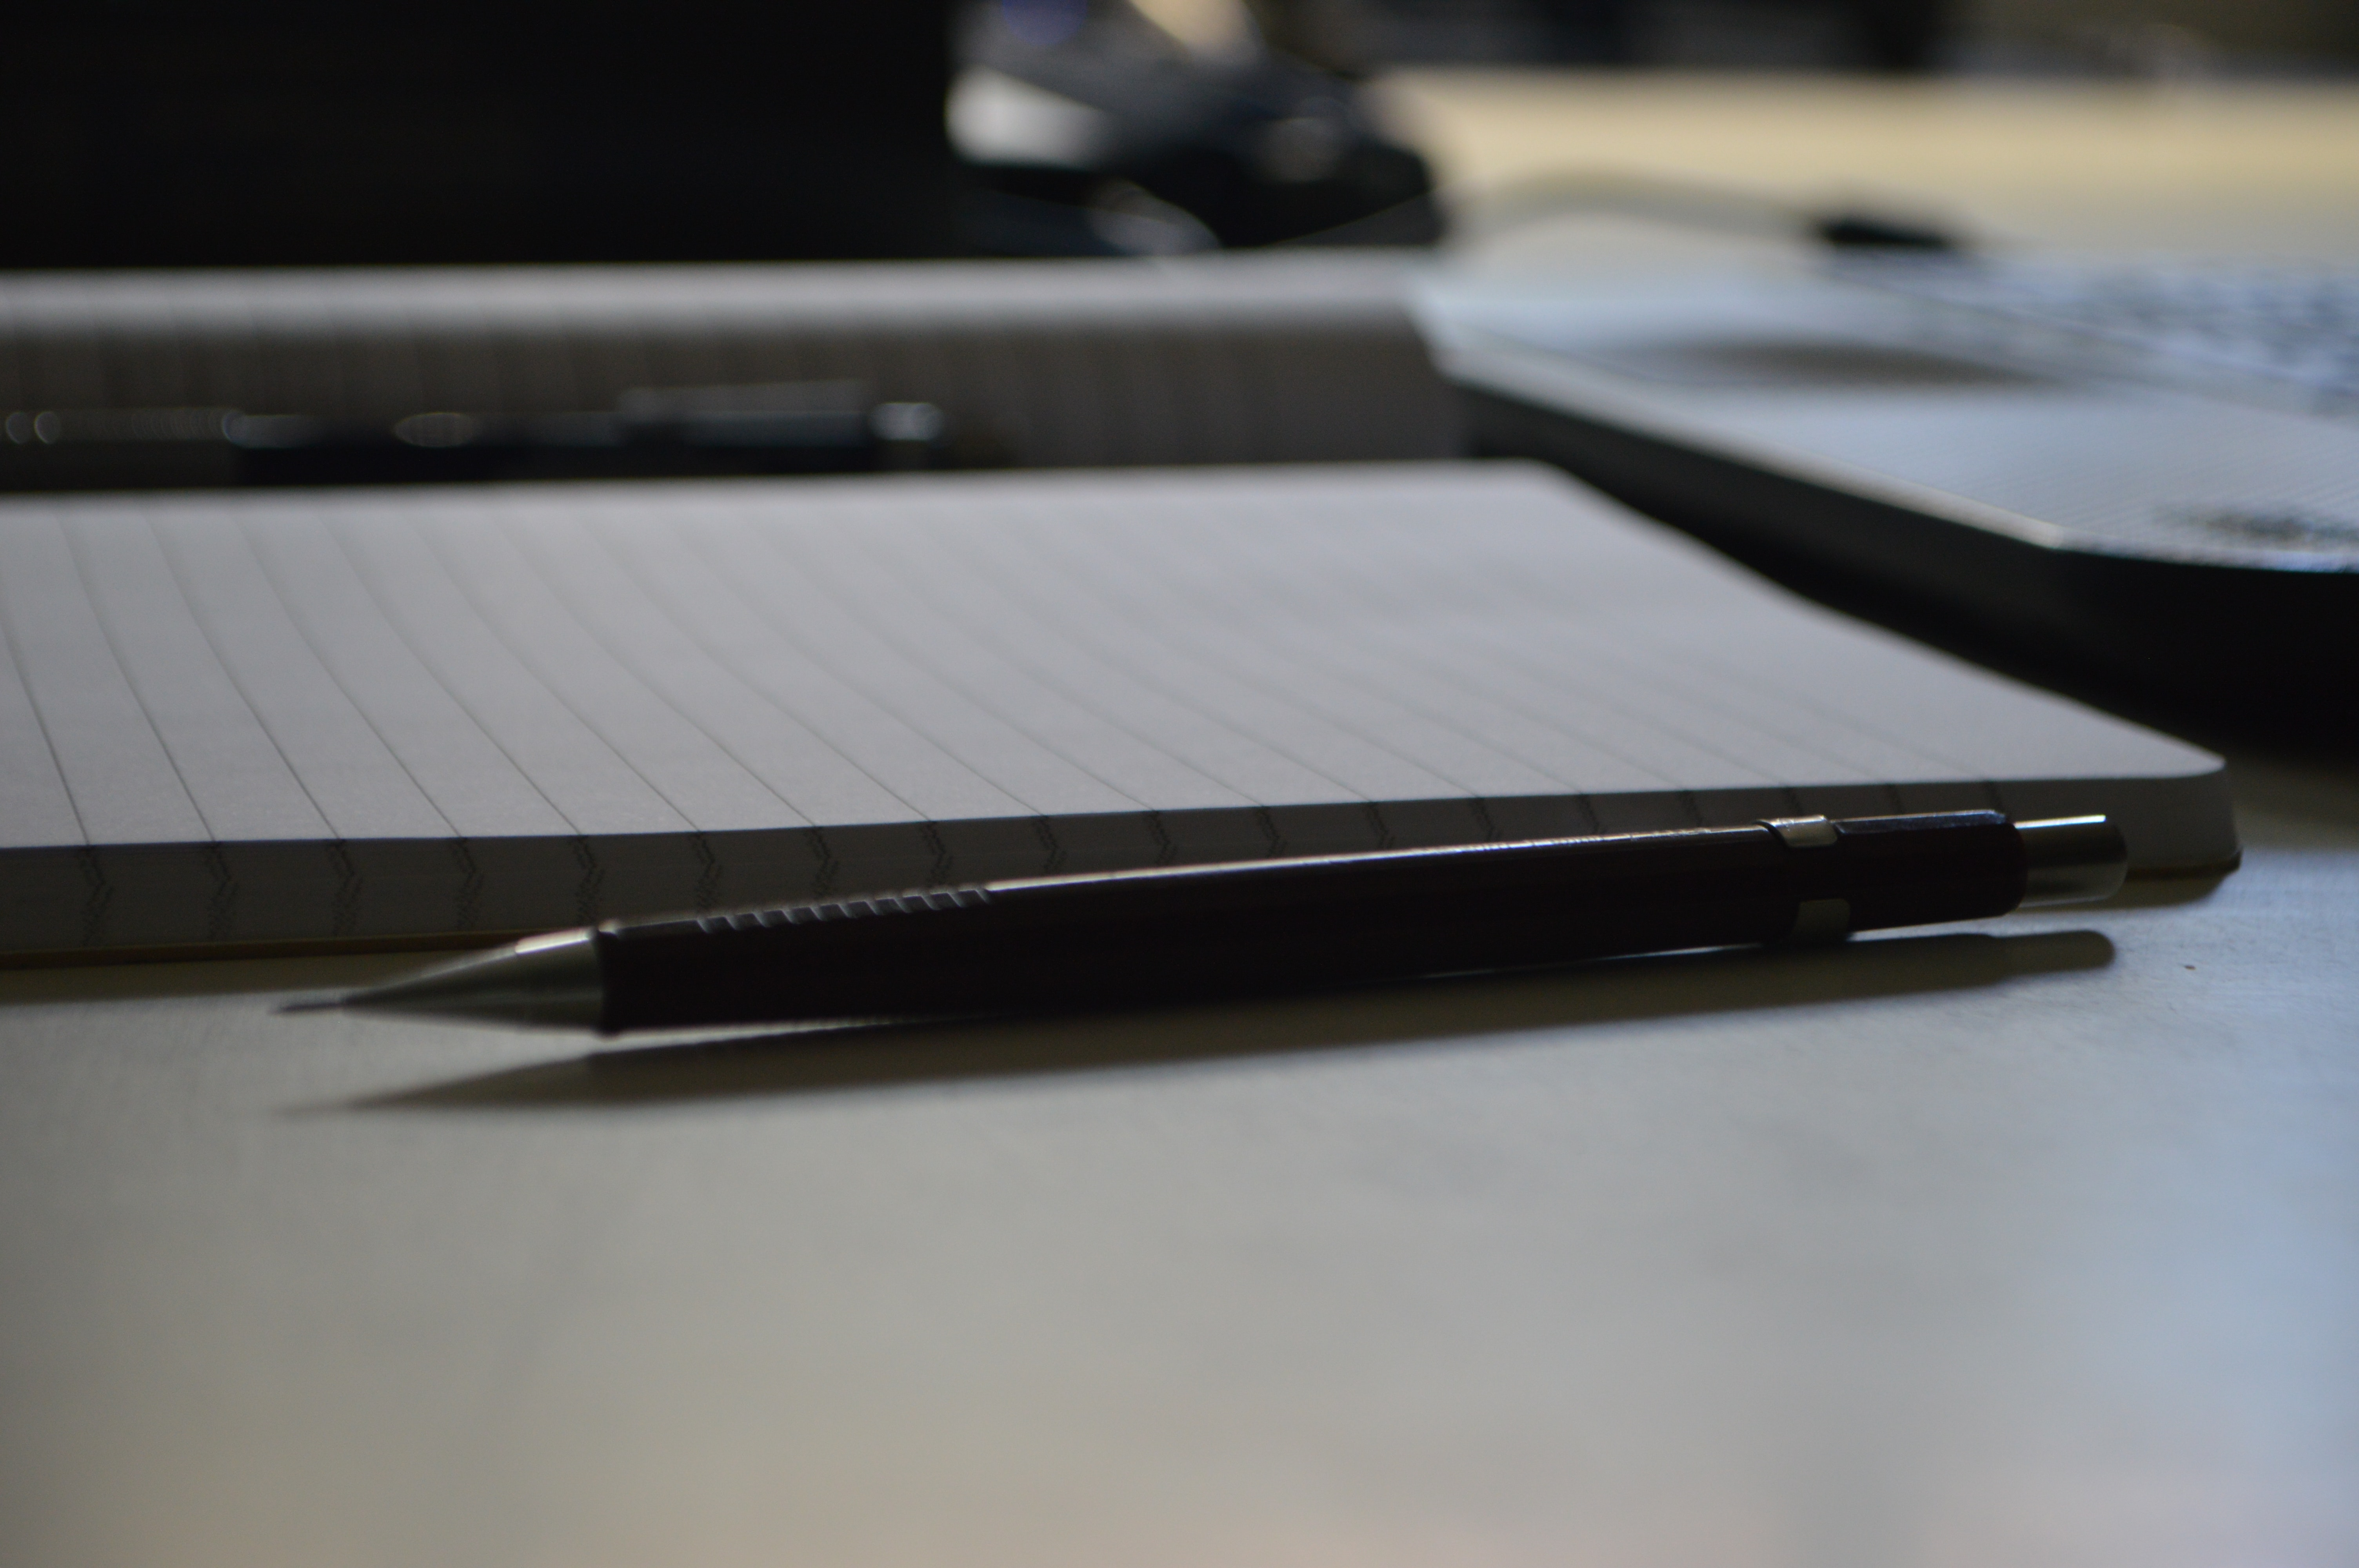 Black Point Pen Beside Ruled Paper, Depth of field, Notebook, Paper, Pencil, HQ Photo